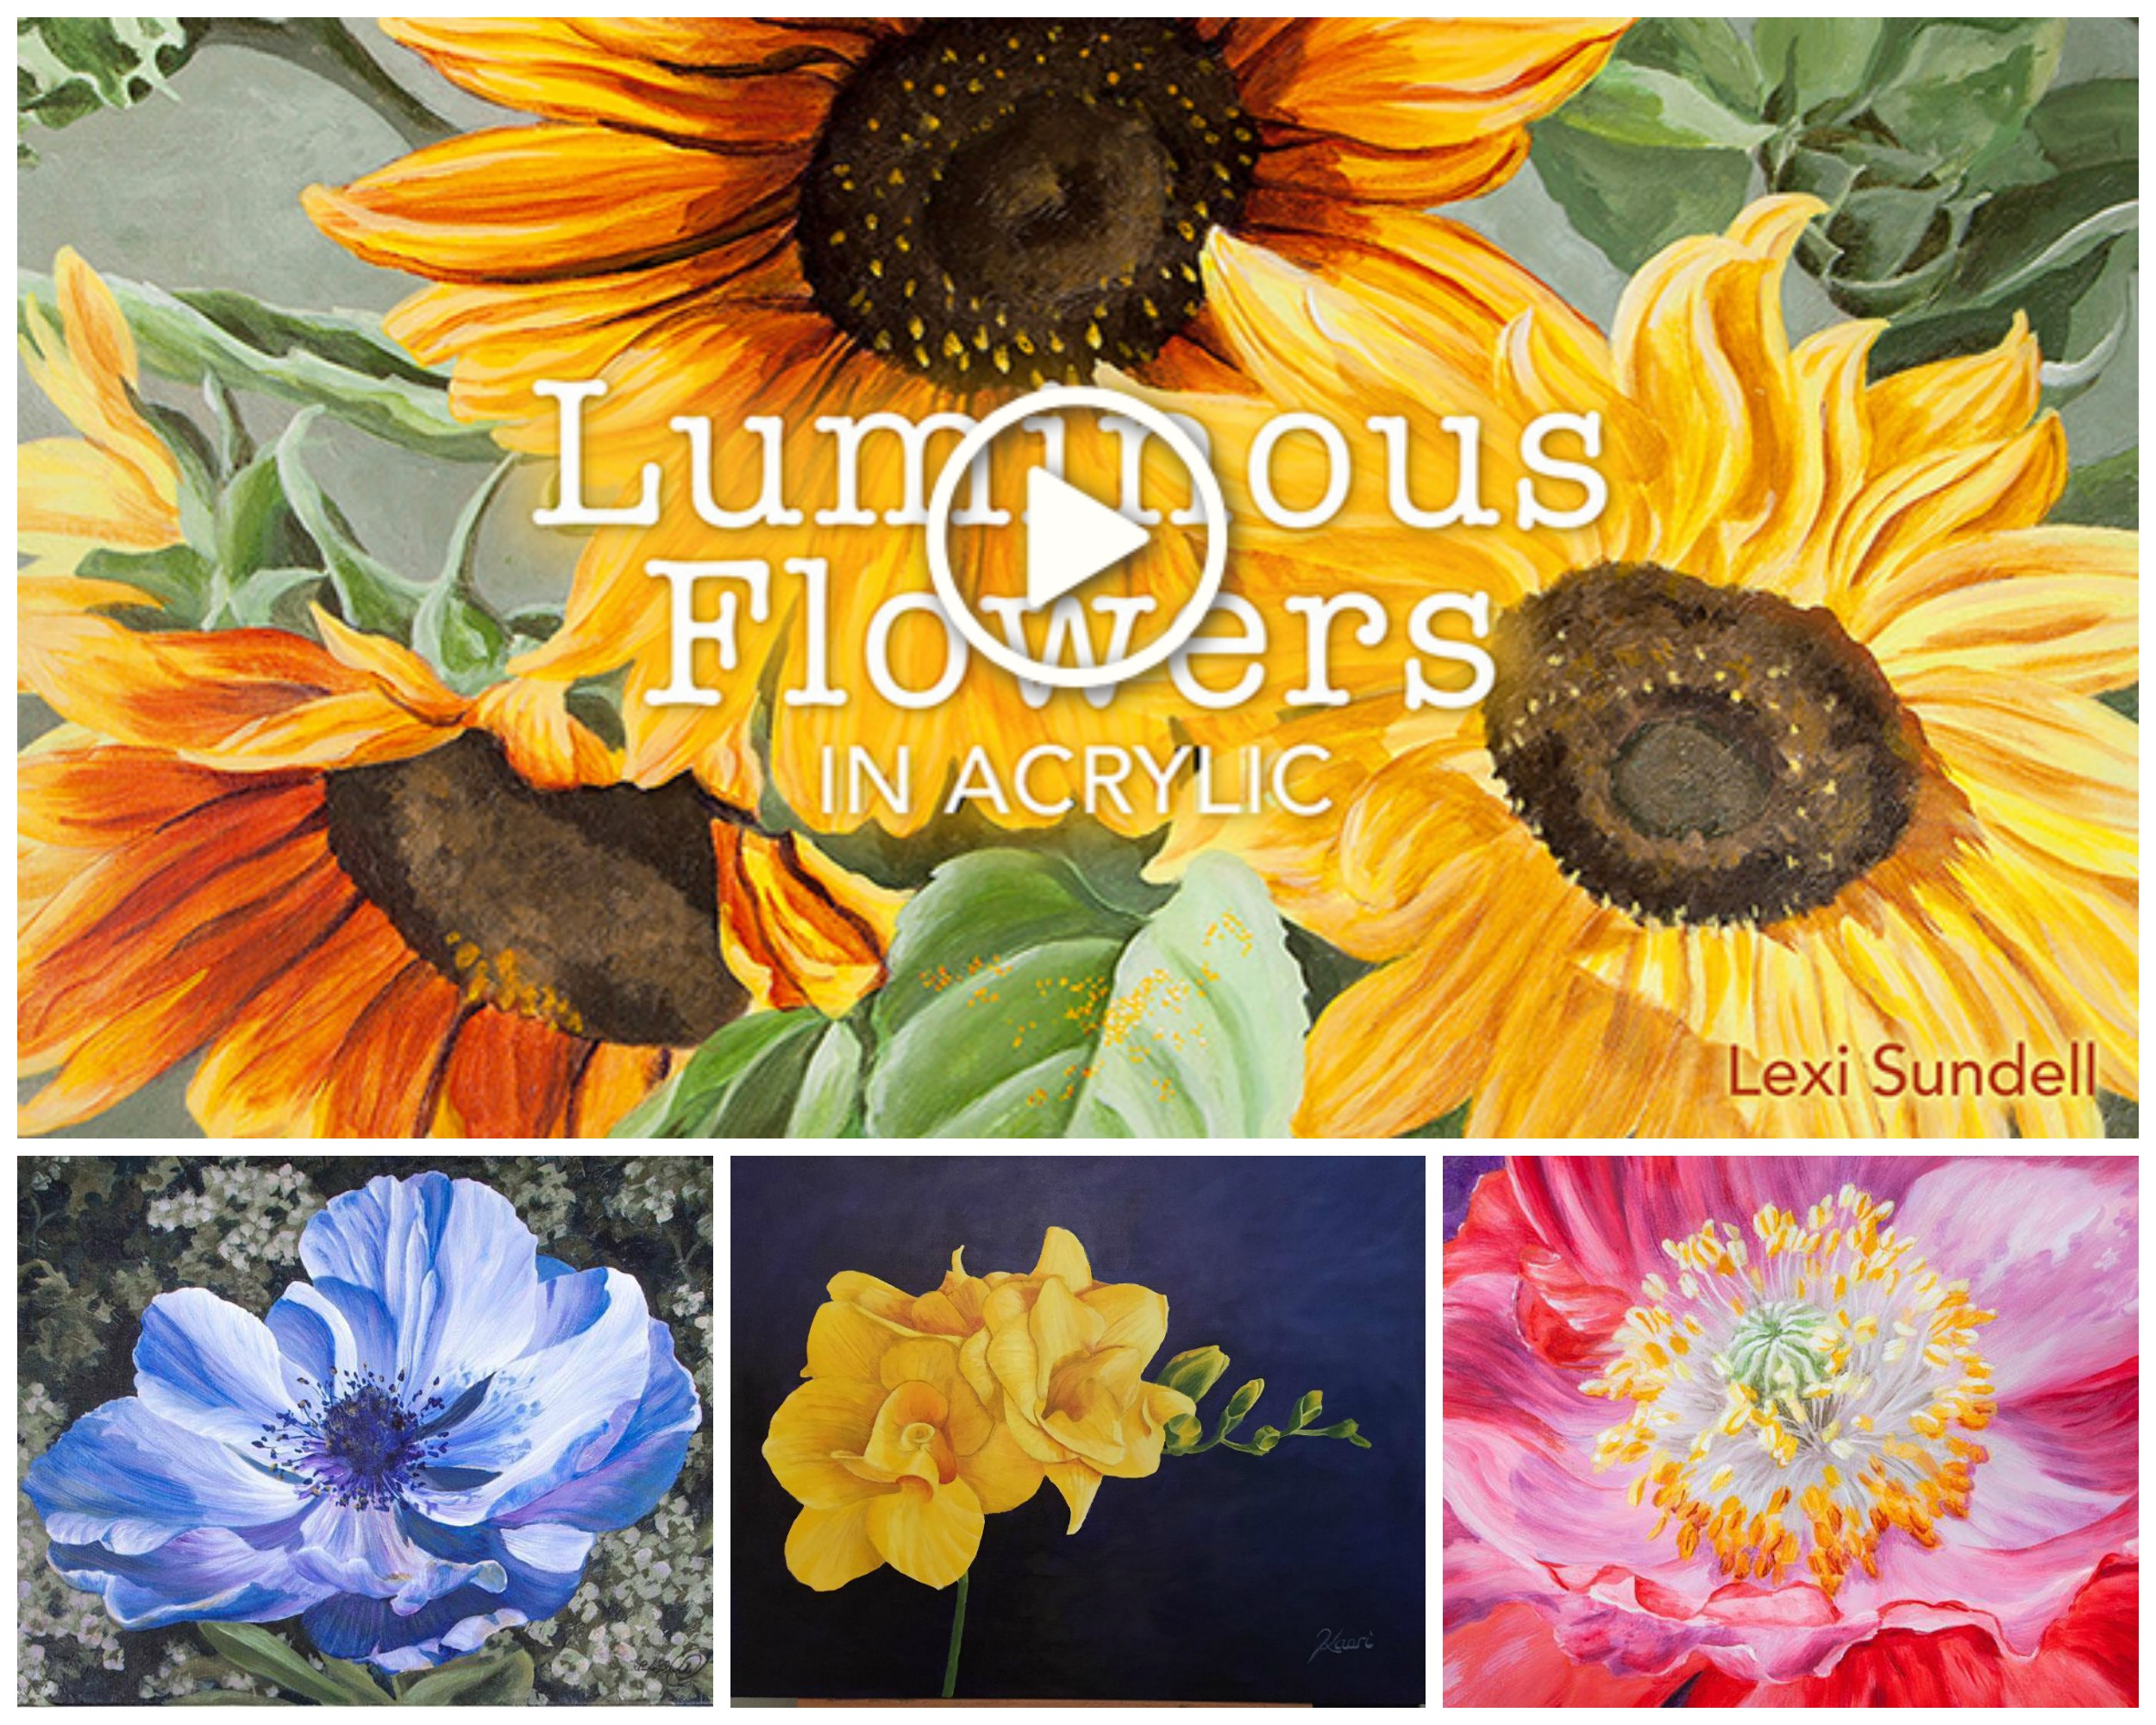 Luminous Flowers in Acrylic Collage